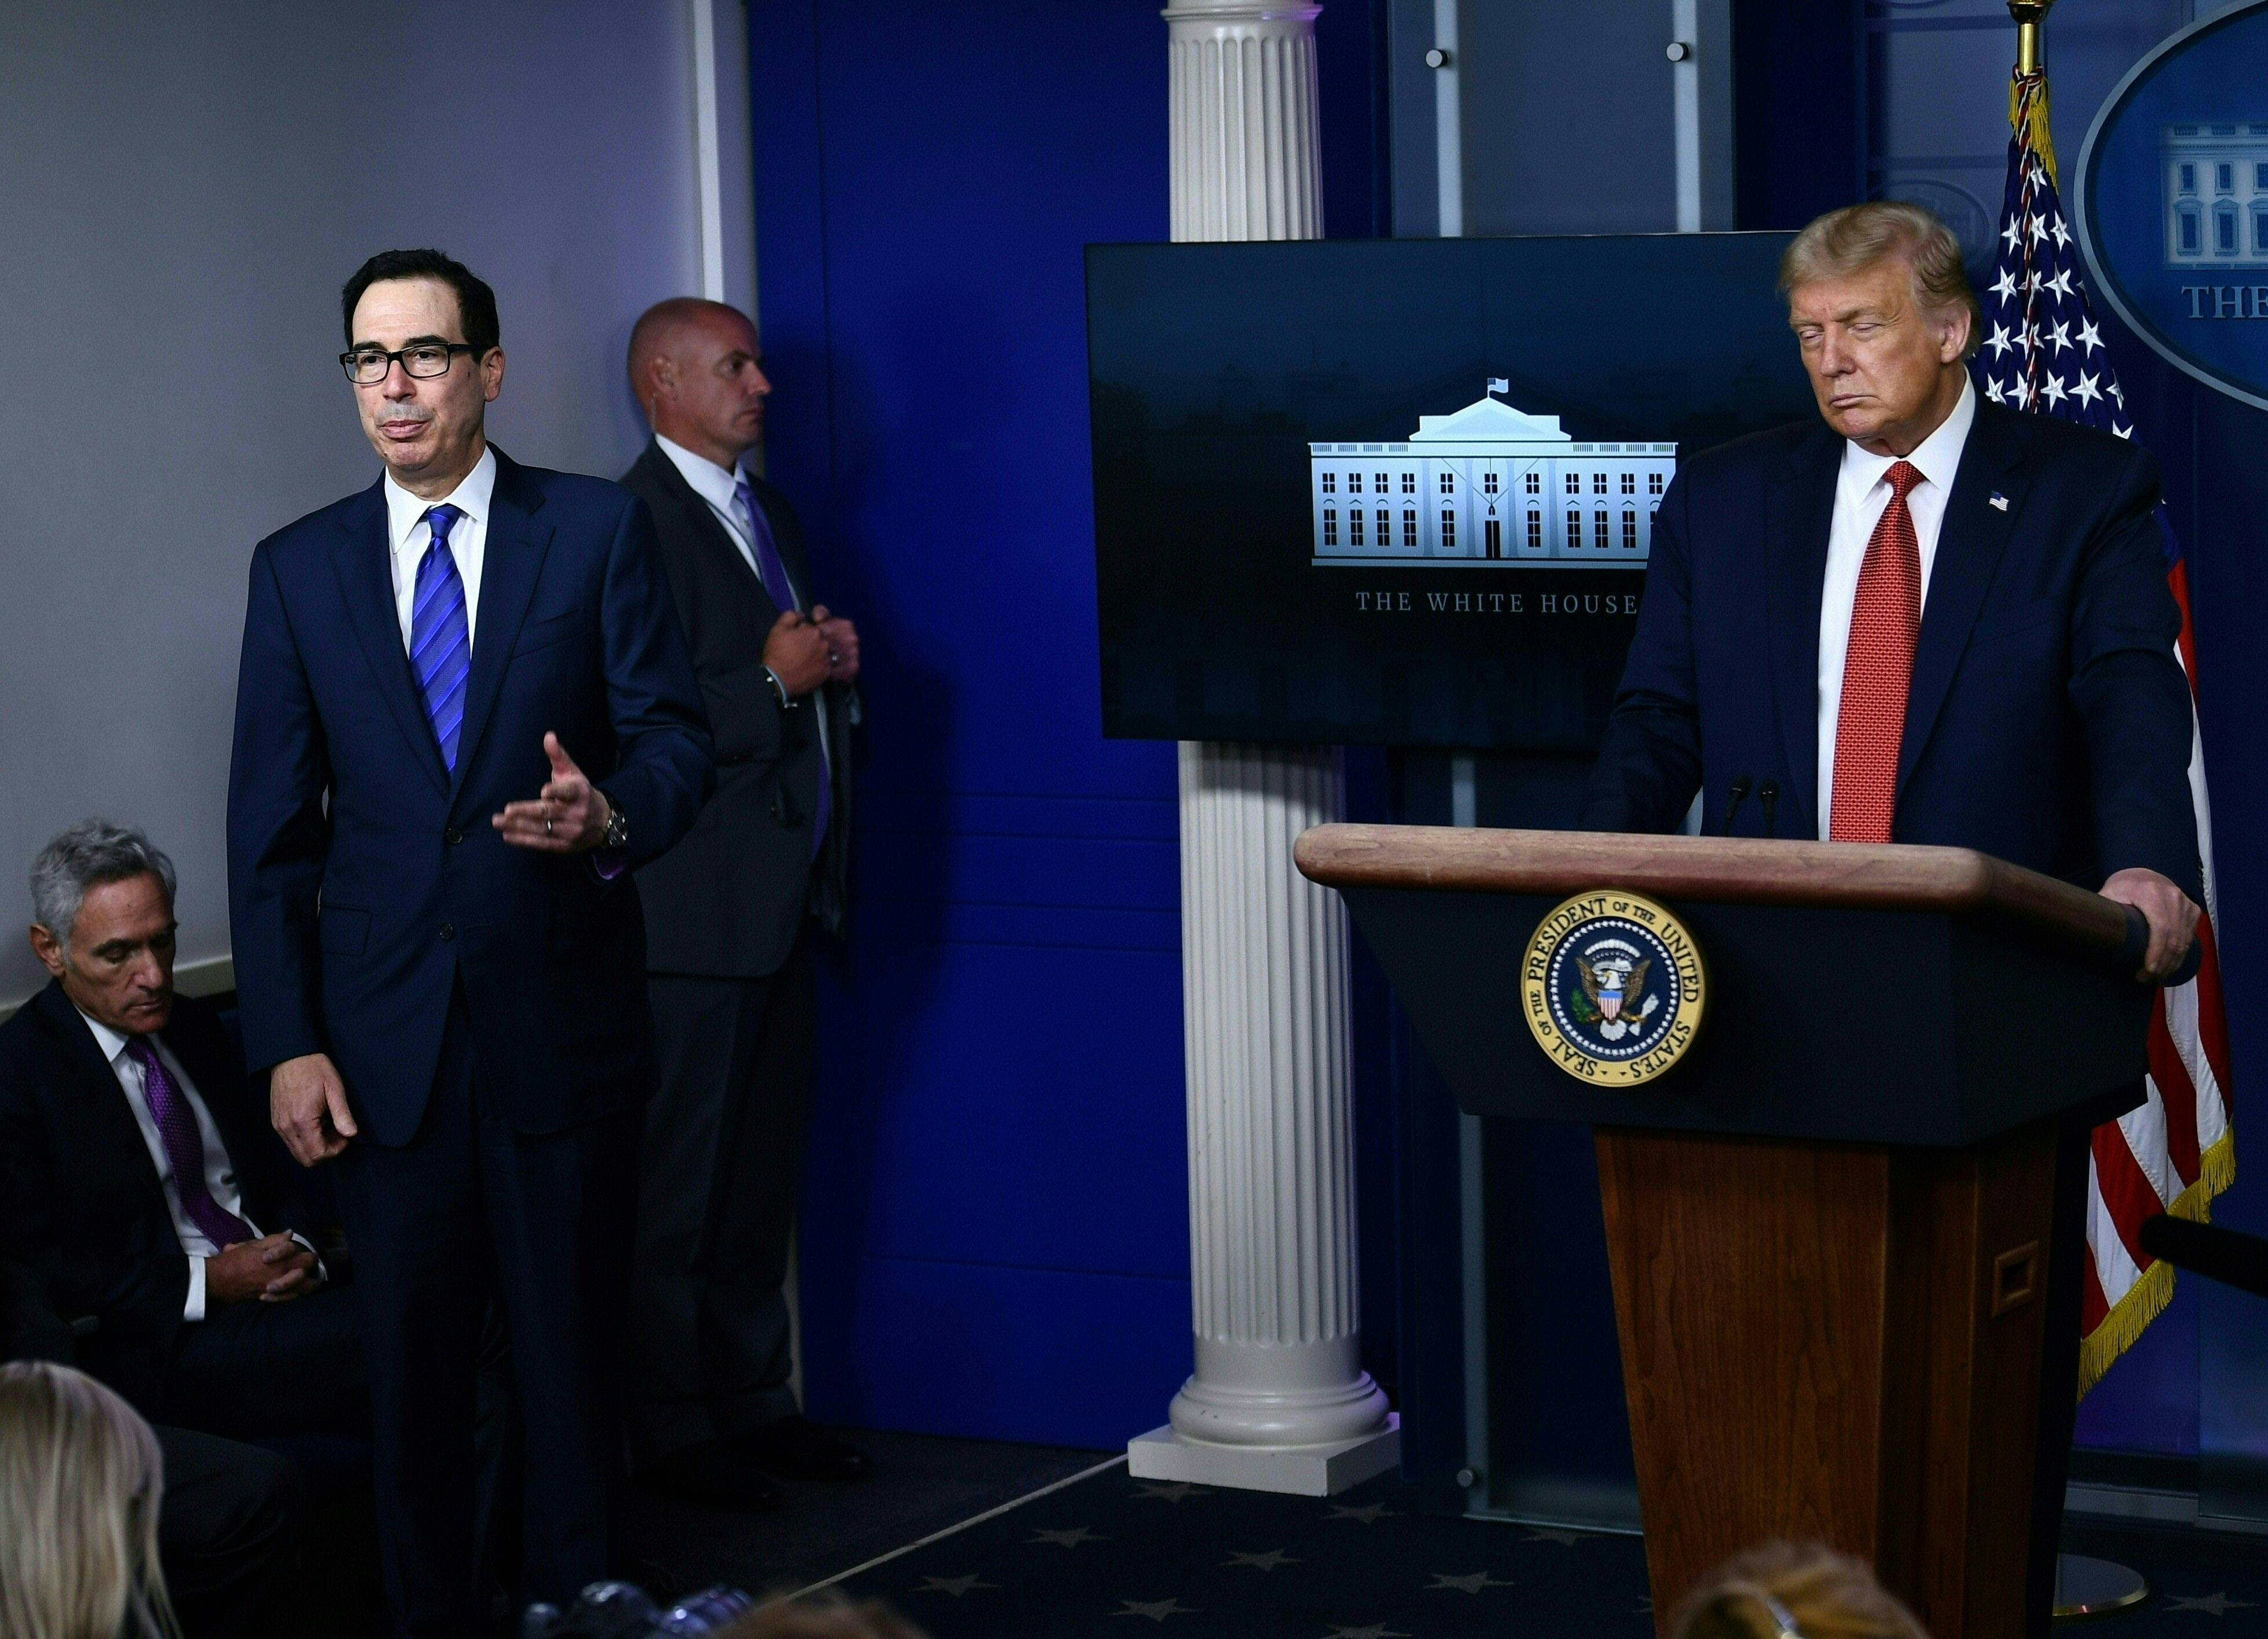 """US President Donald Trump listens to Treasury Secretary Steven Mnuchin in the Brady Briefing Room of the White House in Washington, DC, on August 10, 2020. - Secret Service guards shot a person, who was apparently armed, outside the White House on Monday, President Donald Trump said just after being briefly evacuated in the middle of a press conference. The president was abruptly ushered out of the press event and black-clad secret service agents with automatic rifles rushed across the lawn north of the White House. Minutes later, Trump reappeared at the press conference, where journalists had been locked in, and announced that someone had been shot outside the White House grounds. Trump said he knew nothing about the identity or motives of the person shot, but when asked if the person had been armed, answered: """"From what I understand, the answer is yes."""" (Photo by Brendan Smialowski / AFP) (Photo by BRENDAN SMIALOWSKI/AFP via Getty Images)"""